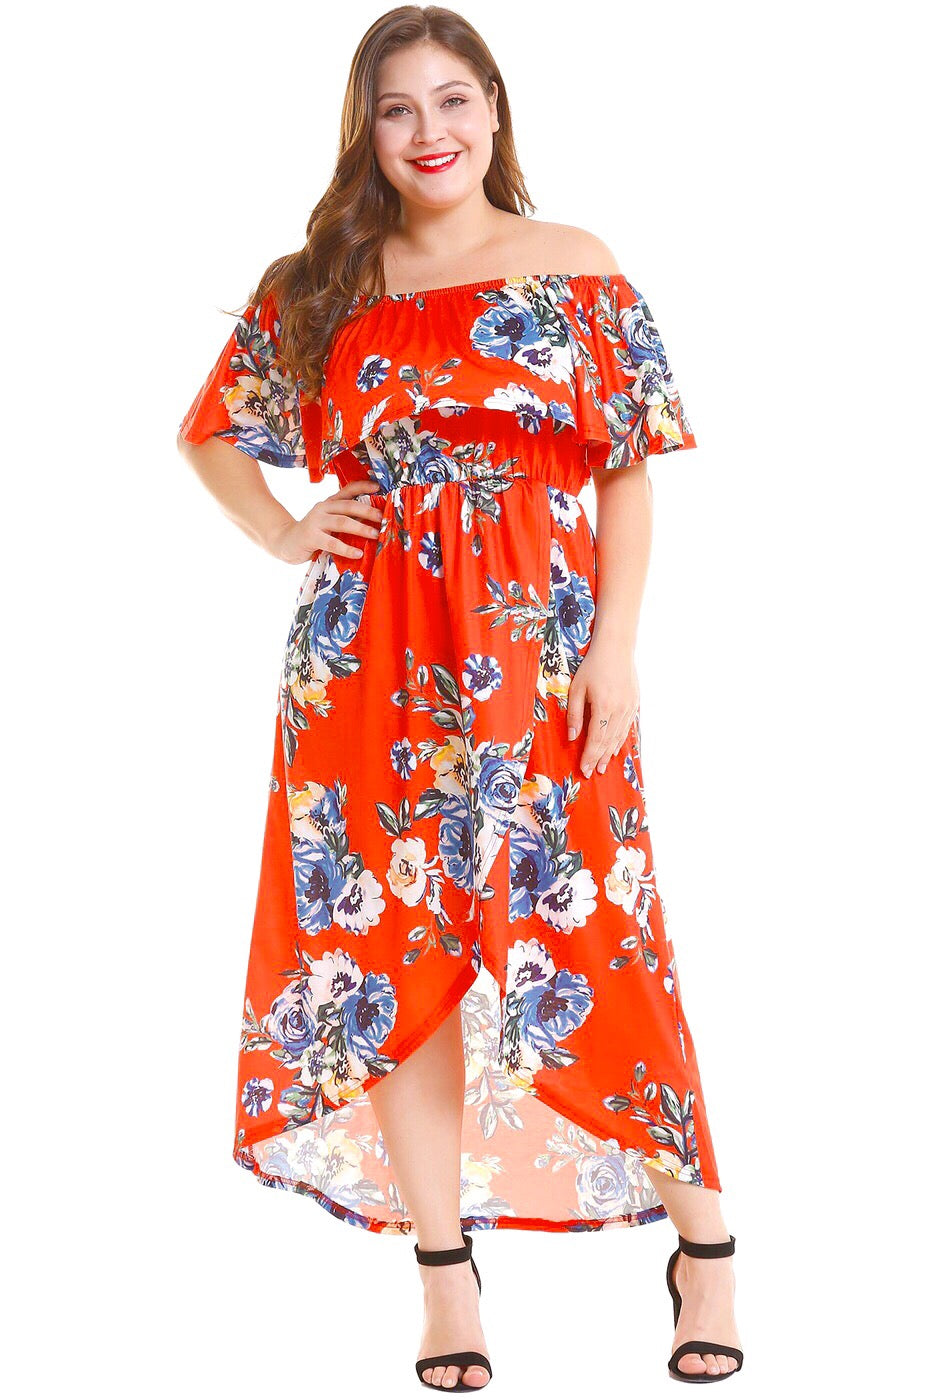 SHE OWNED IT OFF THE SHOULDER FLORAL DRESS